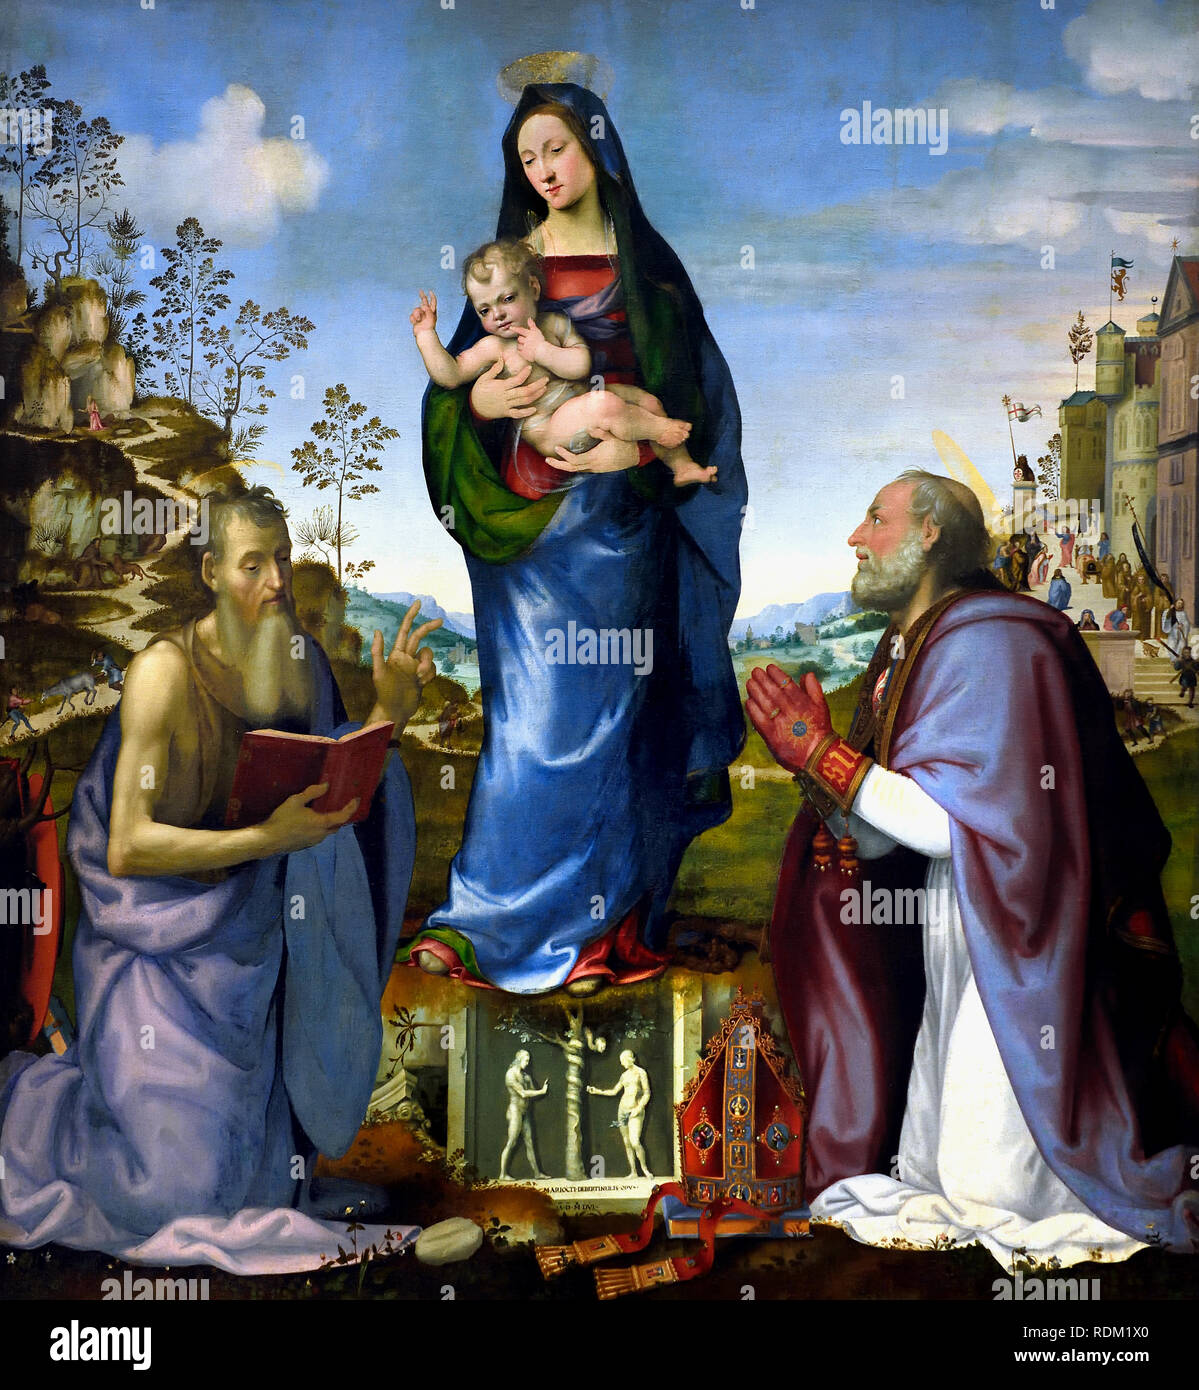 Madonna and Child with Sts. James and Zenobius 1506 by Mariotto Albertinelli (1474-1515) and Franciabigio (-1525) Italy, Italian, - Stock Image